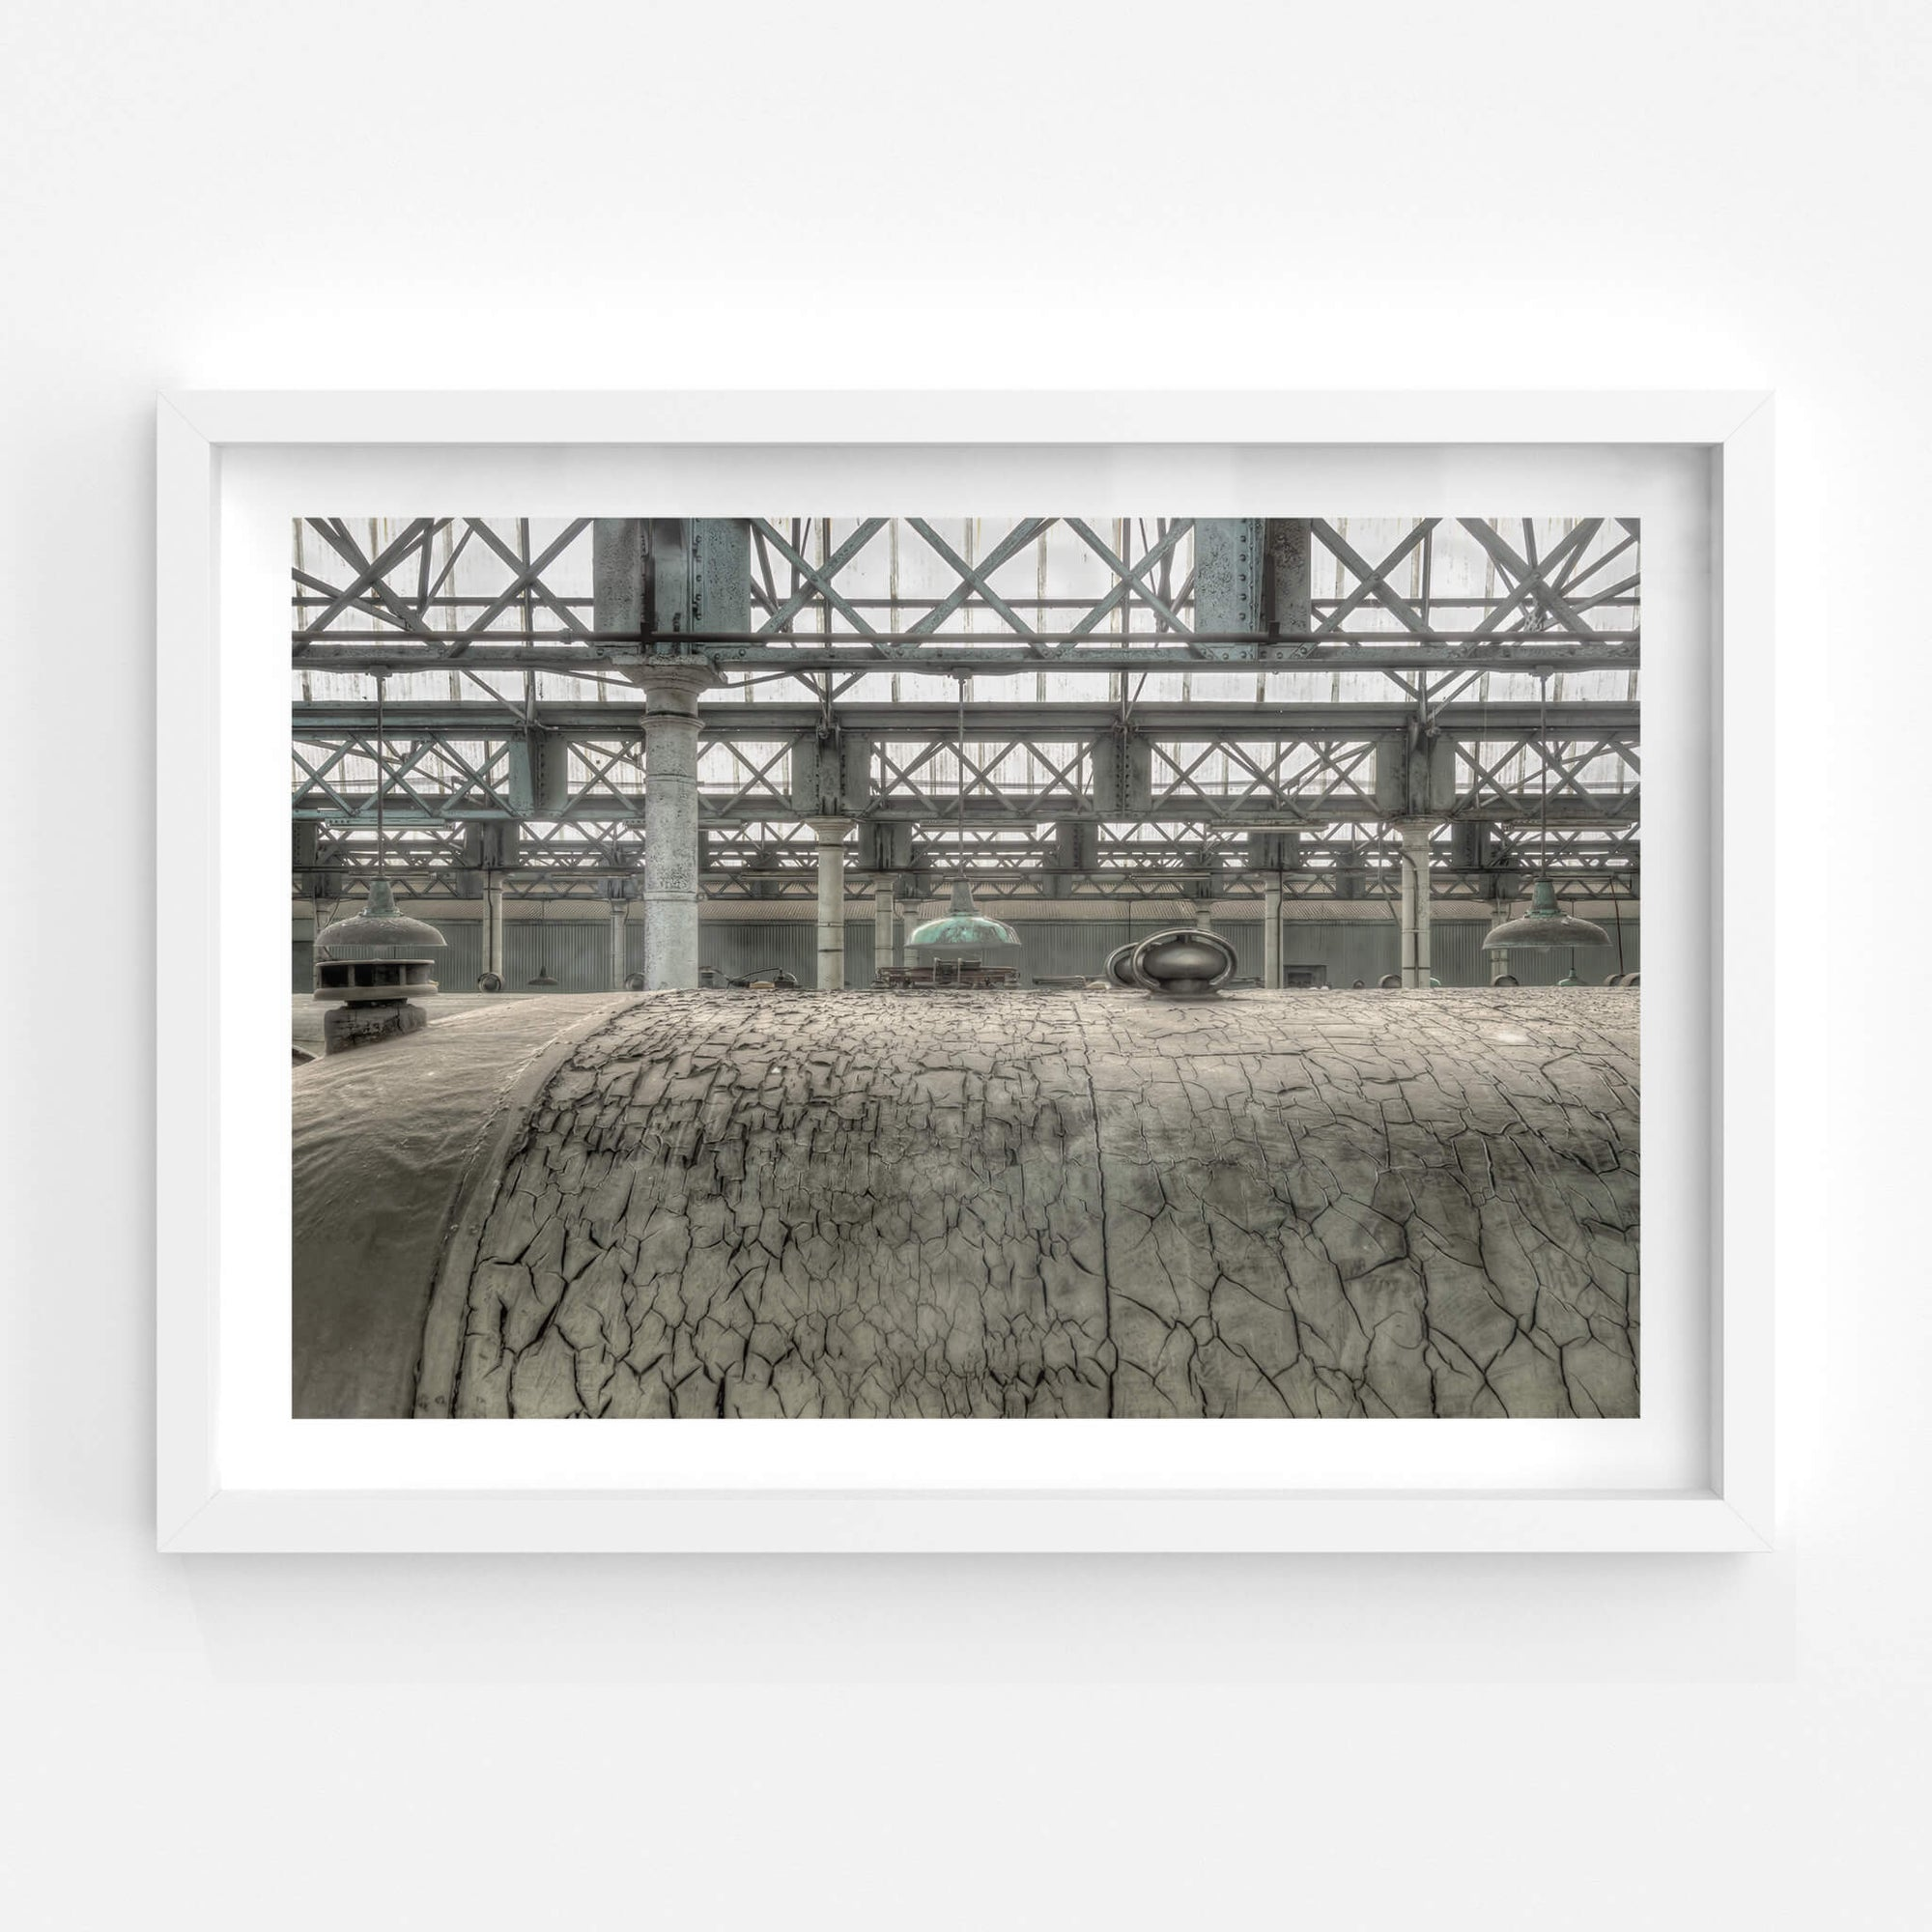 Roof Covering | Eveleigh Paint Shop Fine Art Print - Lost Collective Shop